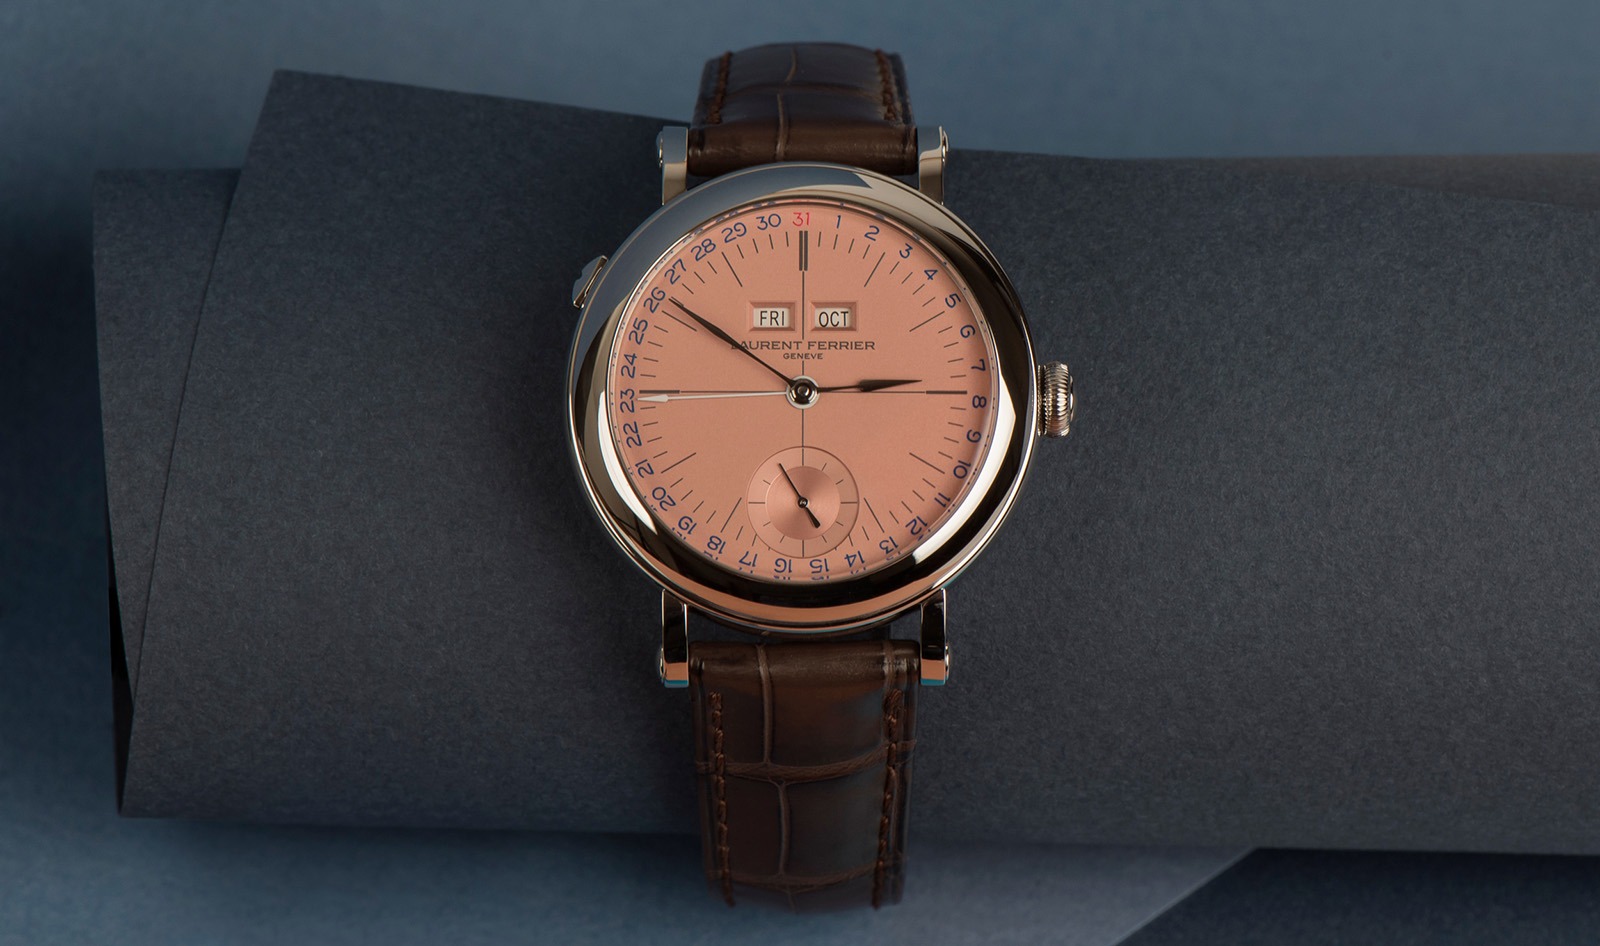 Laurent Ferrier Galet Annual Calendar School Piece Autumn Inspired Geneva Edition